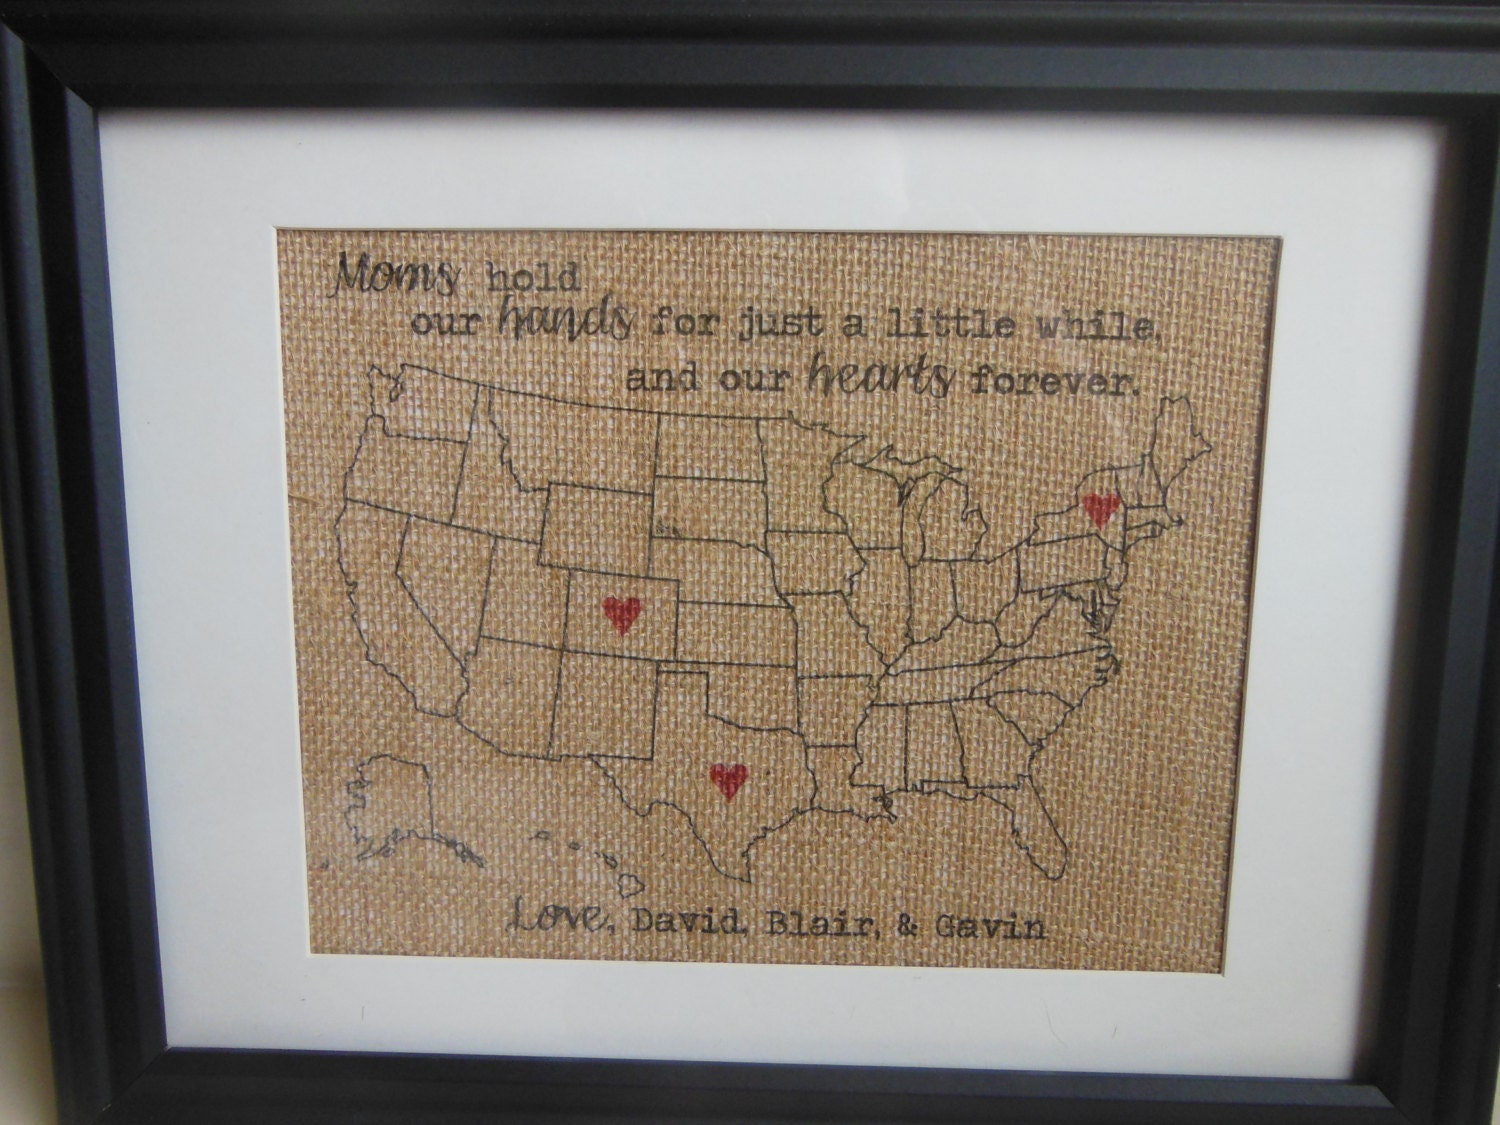 Christmas Gift for Wife or Mom, Burlap Present for Mom - Burlap Print with hearts in locations personalized